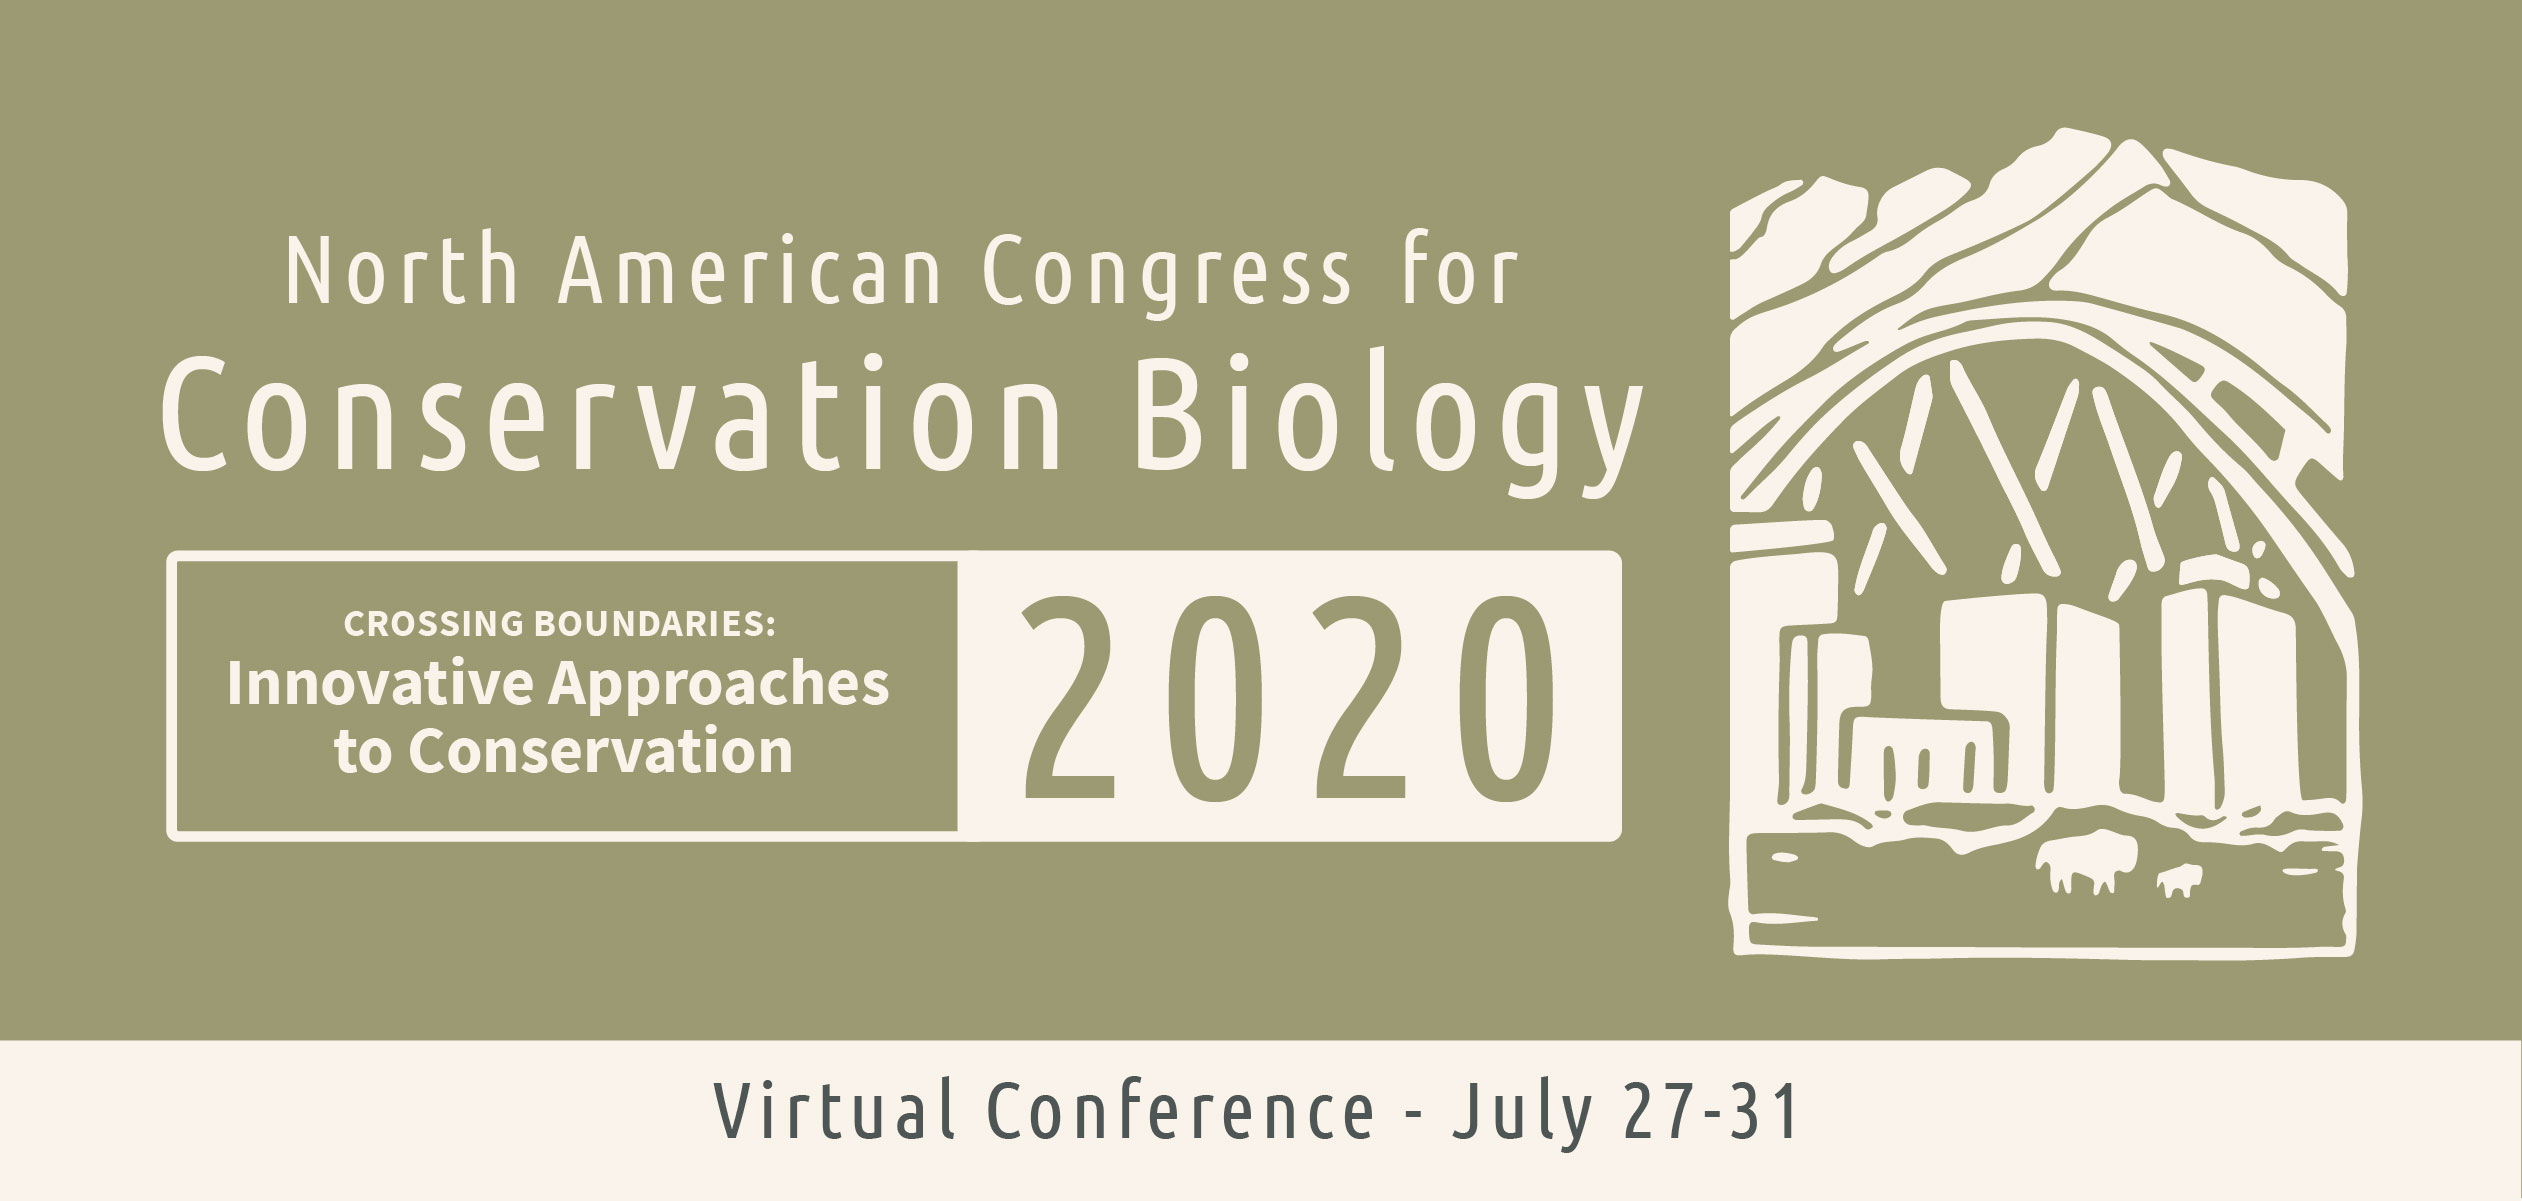 NACCB 2020 virtual web banner